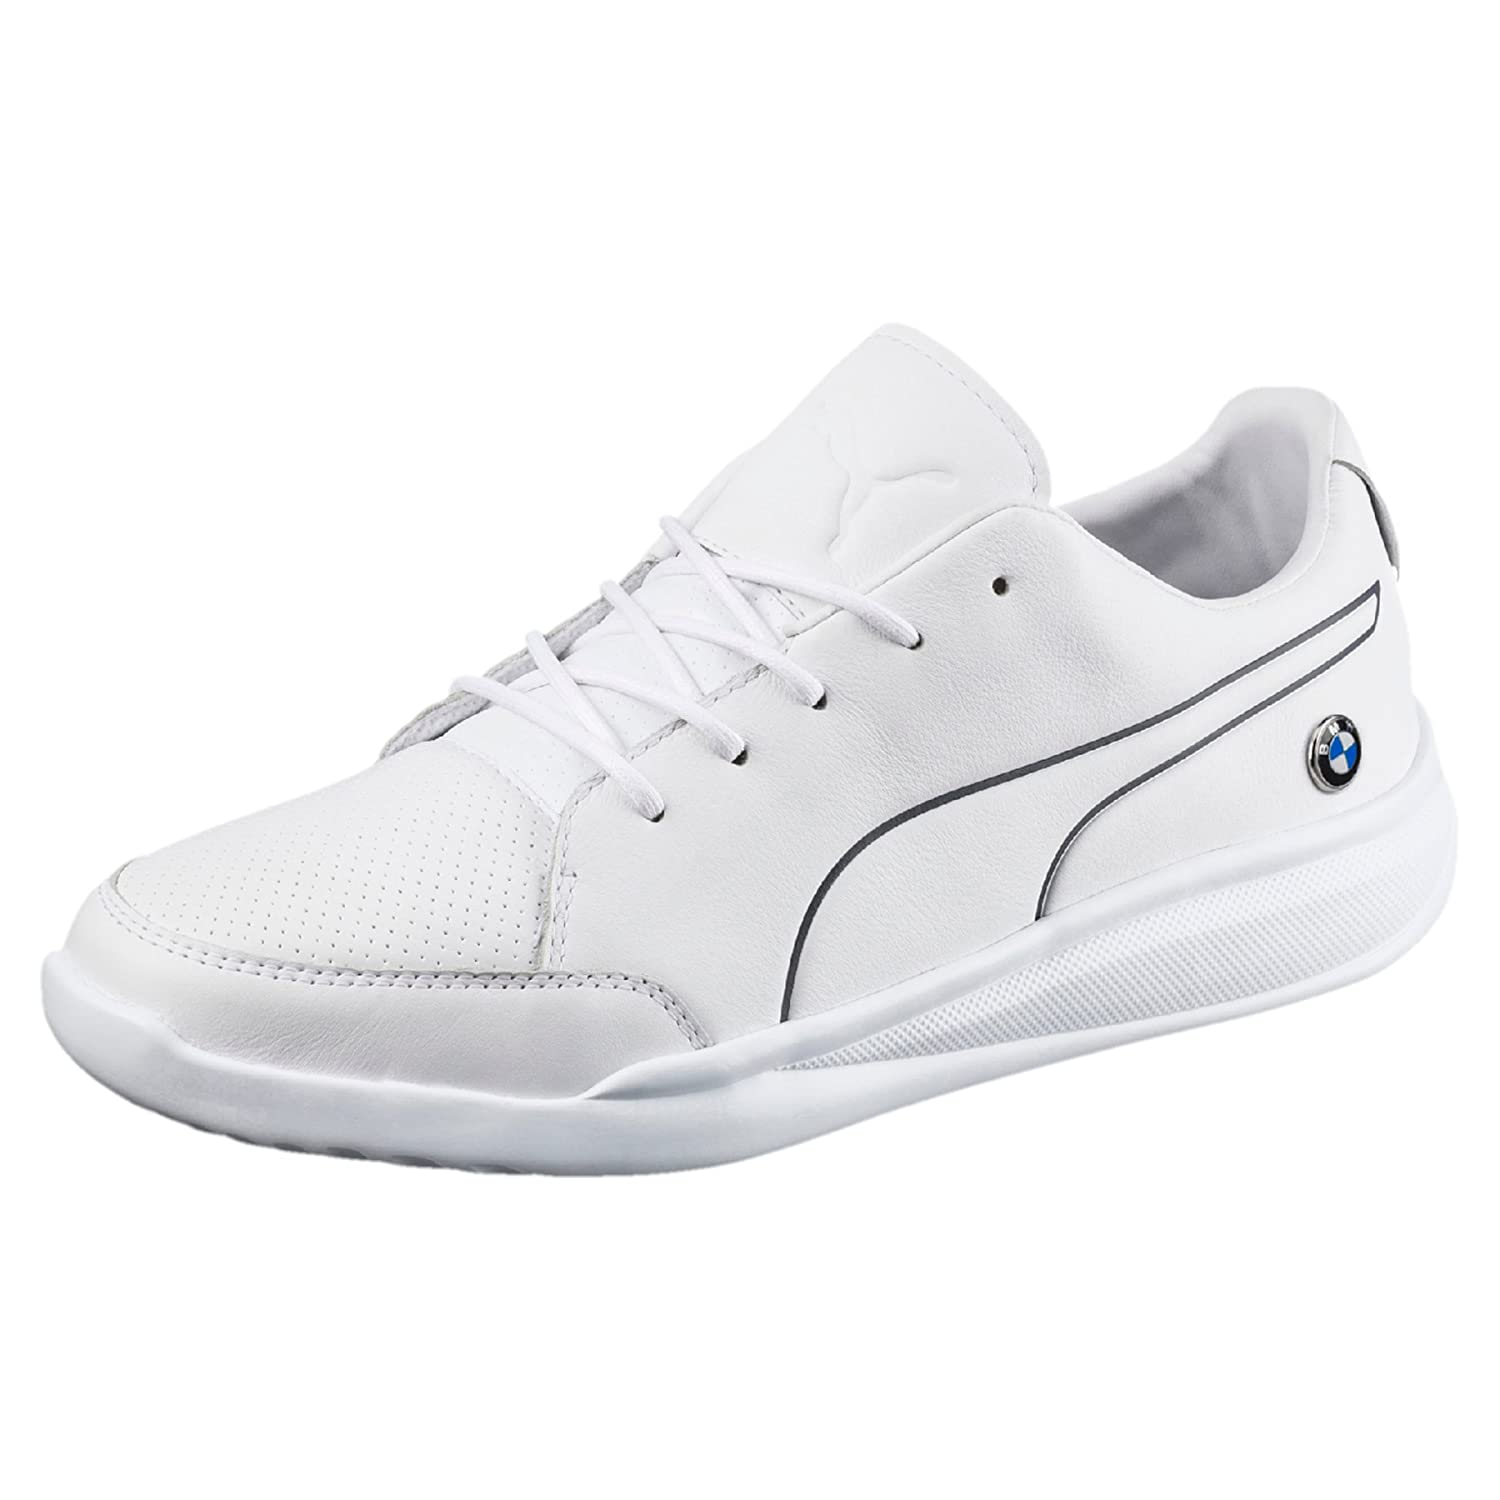 BMW MS Casual White Leather Sneakers